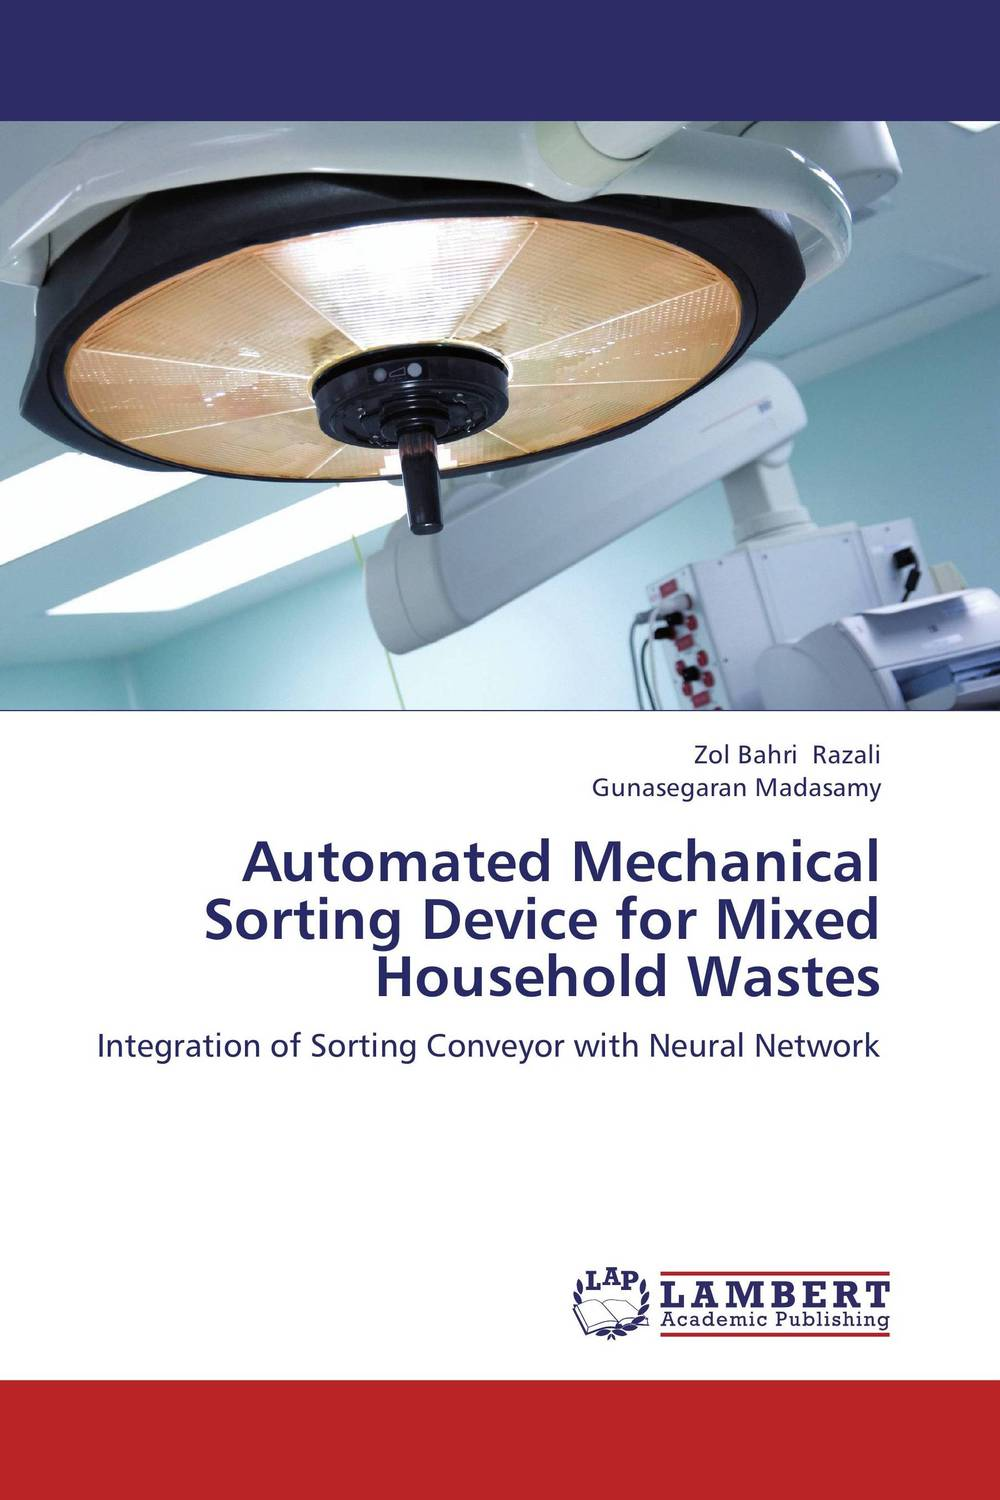 Automated Mechanical Sorting Device for Mixed Household Wastes